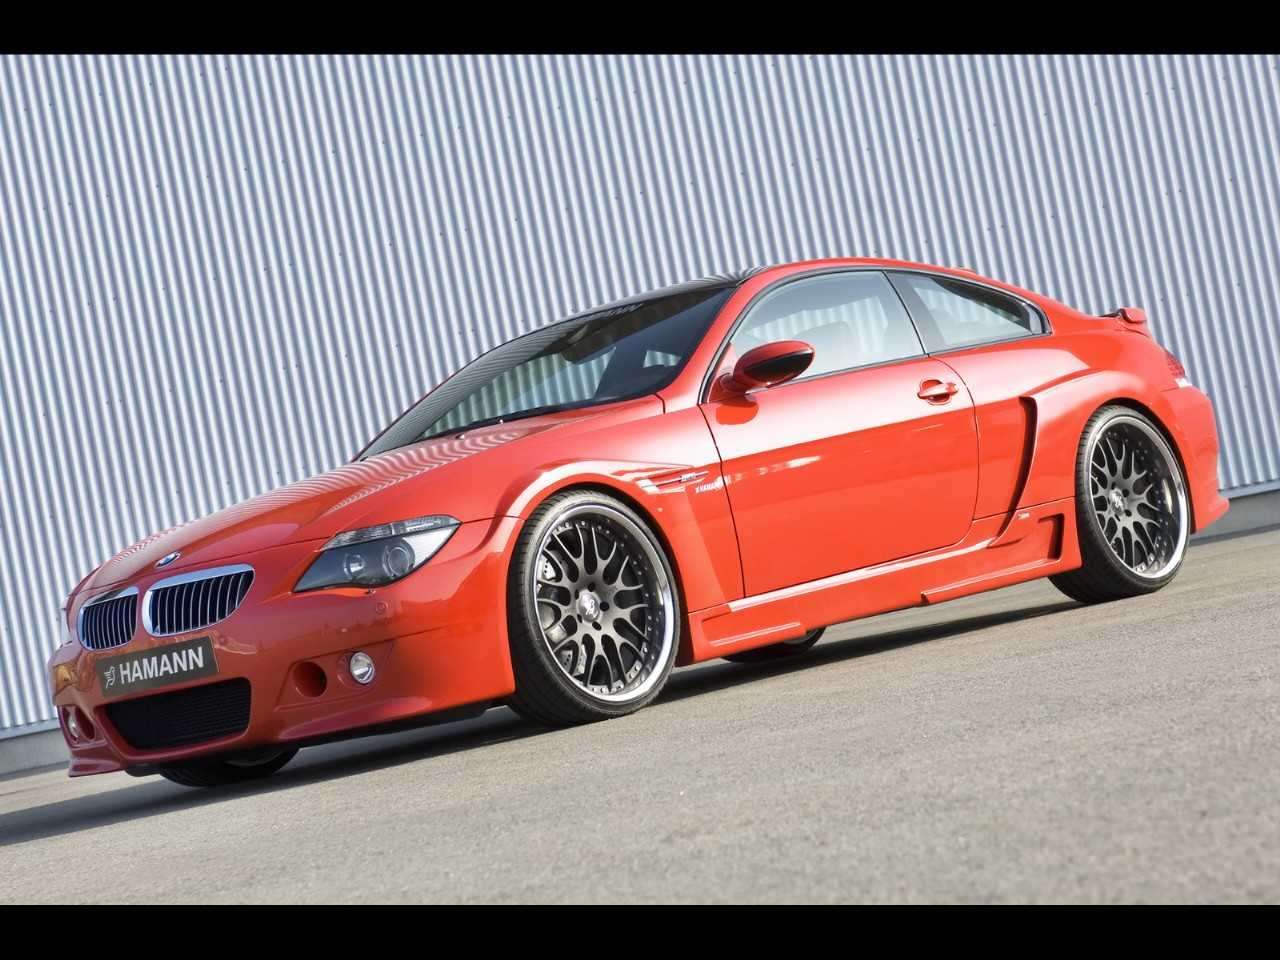 2007 Hamann M6 Widebody Image